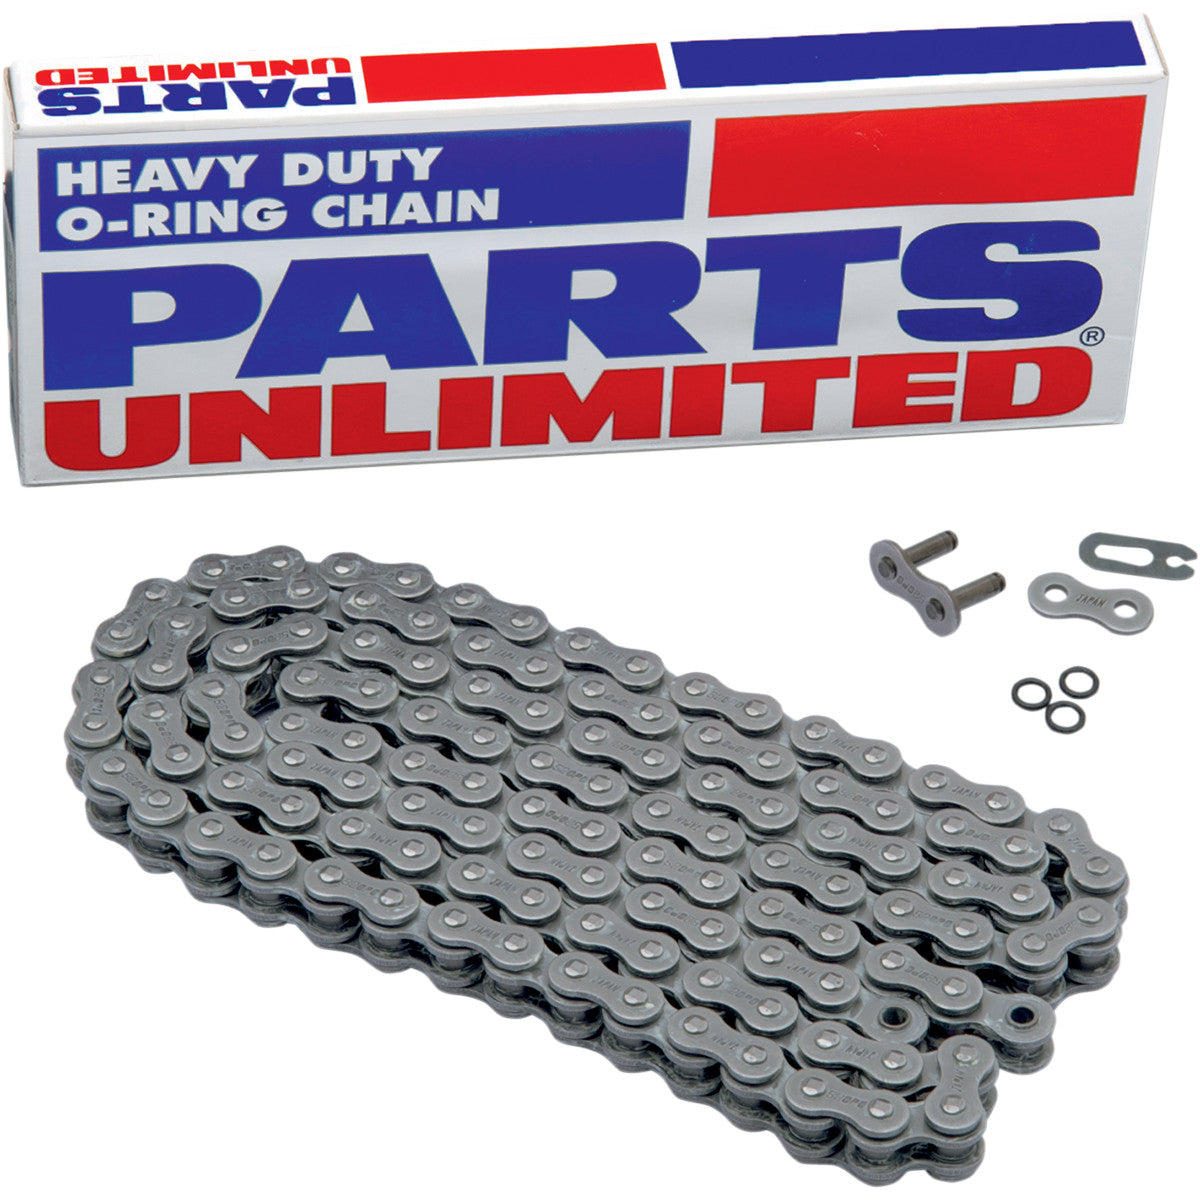 PARTS UNLIMITED-CHAIN CHAIN PU 530 O-RNG X 110L